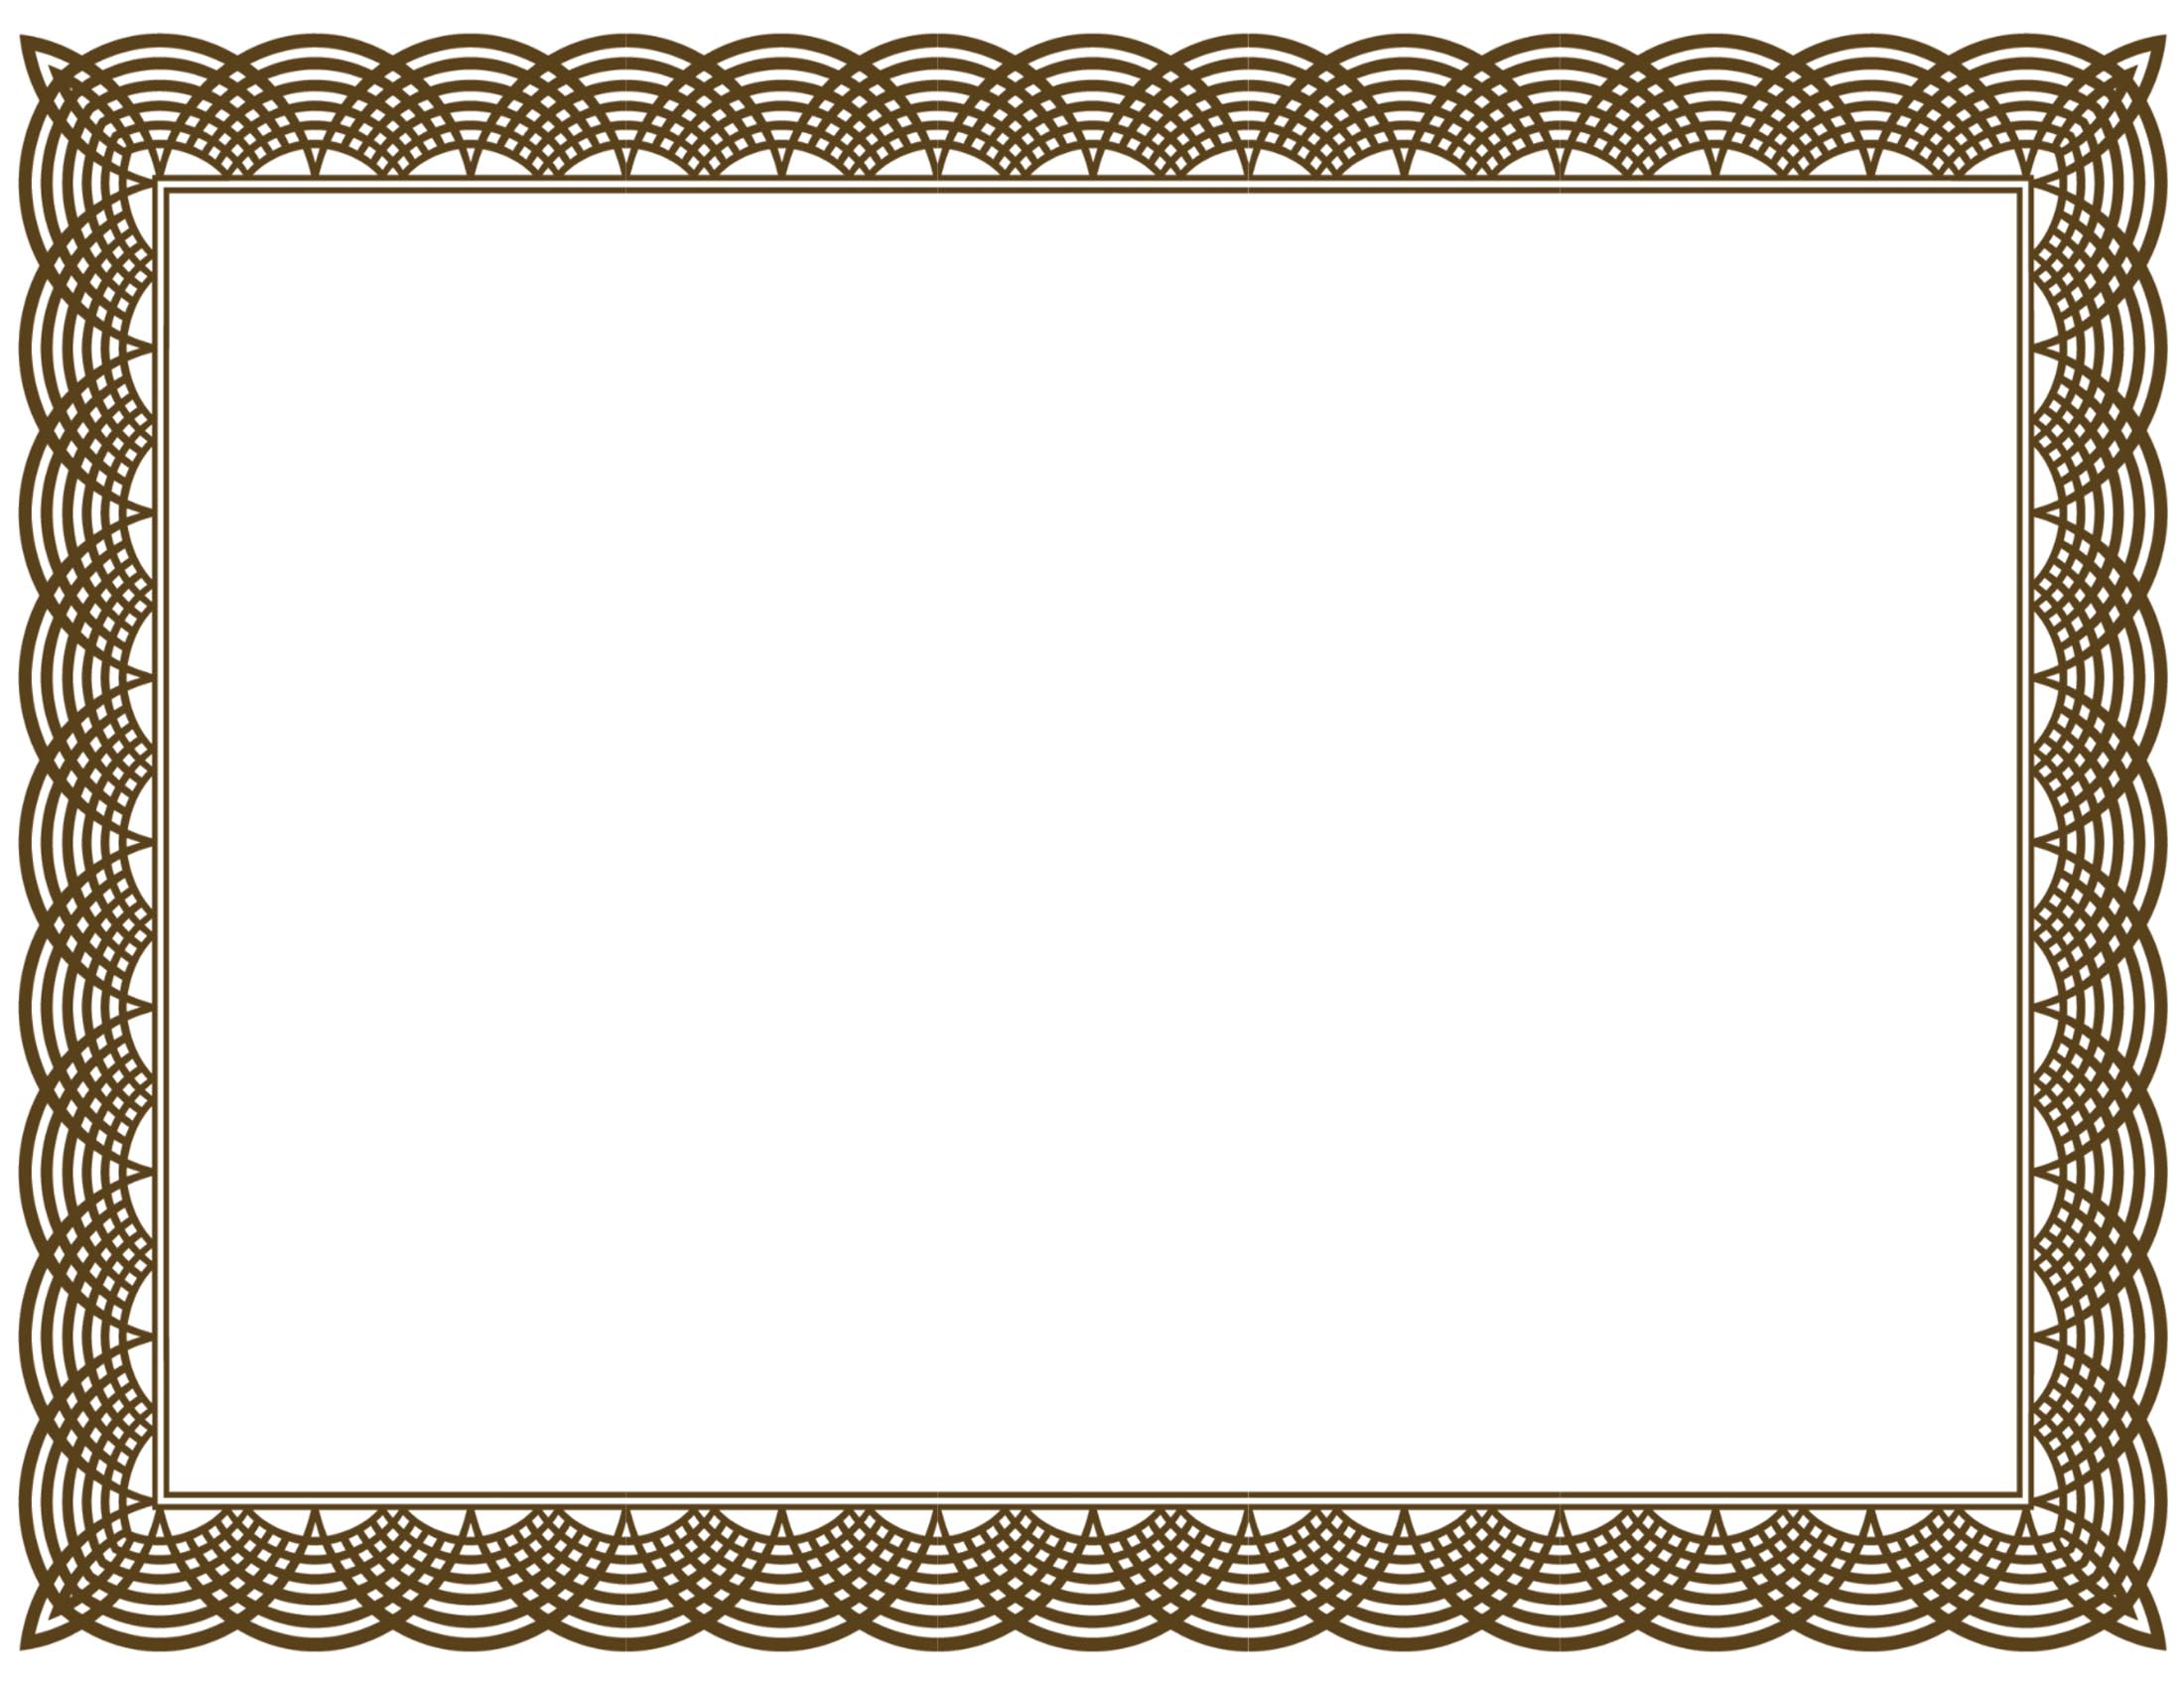 Free certificate borders clipart for Certificate borders and frames